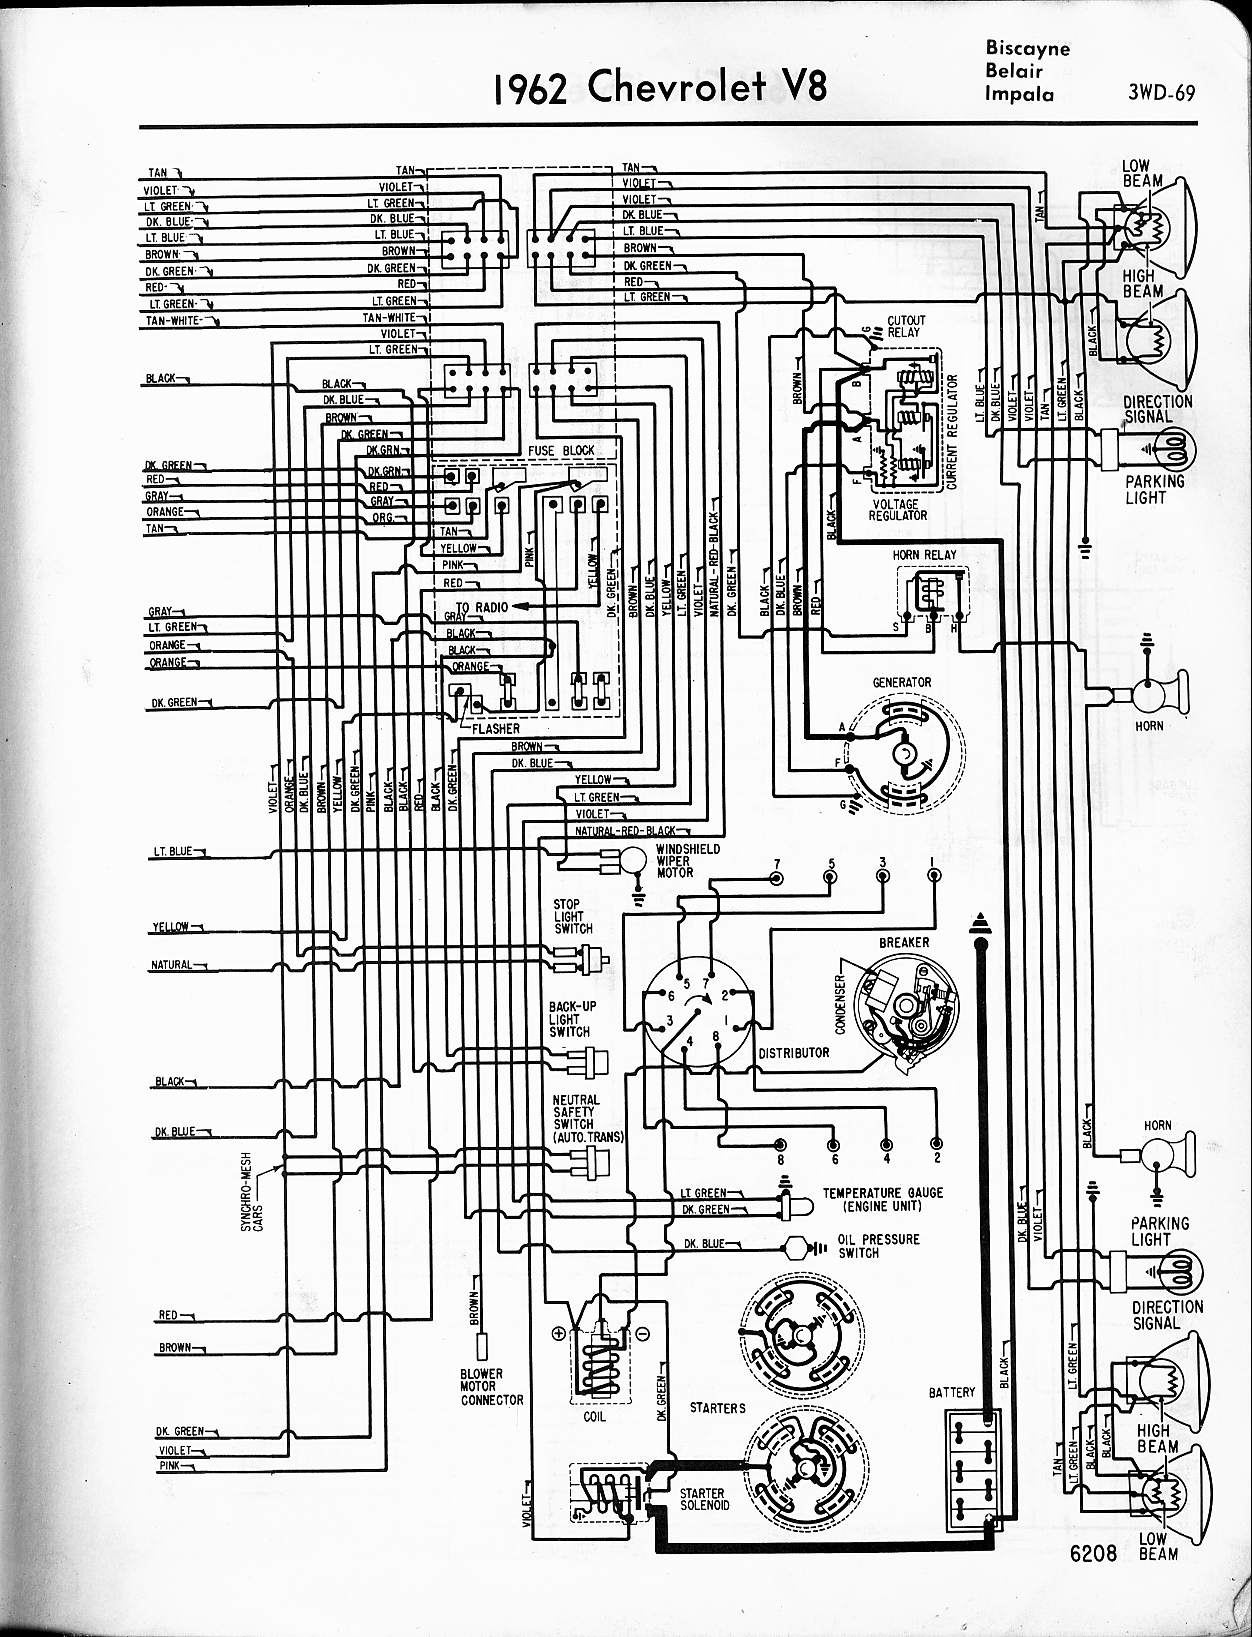 hight resolution of 1962 chevrolet wiring diagram wiring diagram sheet wiring diagram for 1962 chevrolet impala